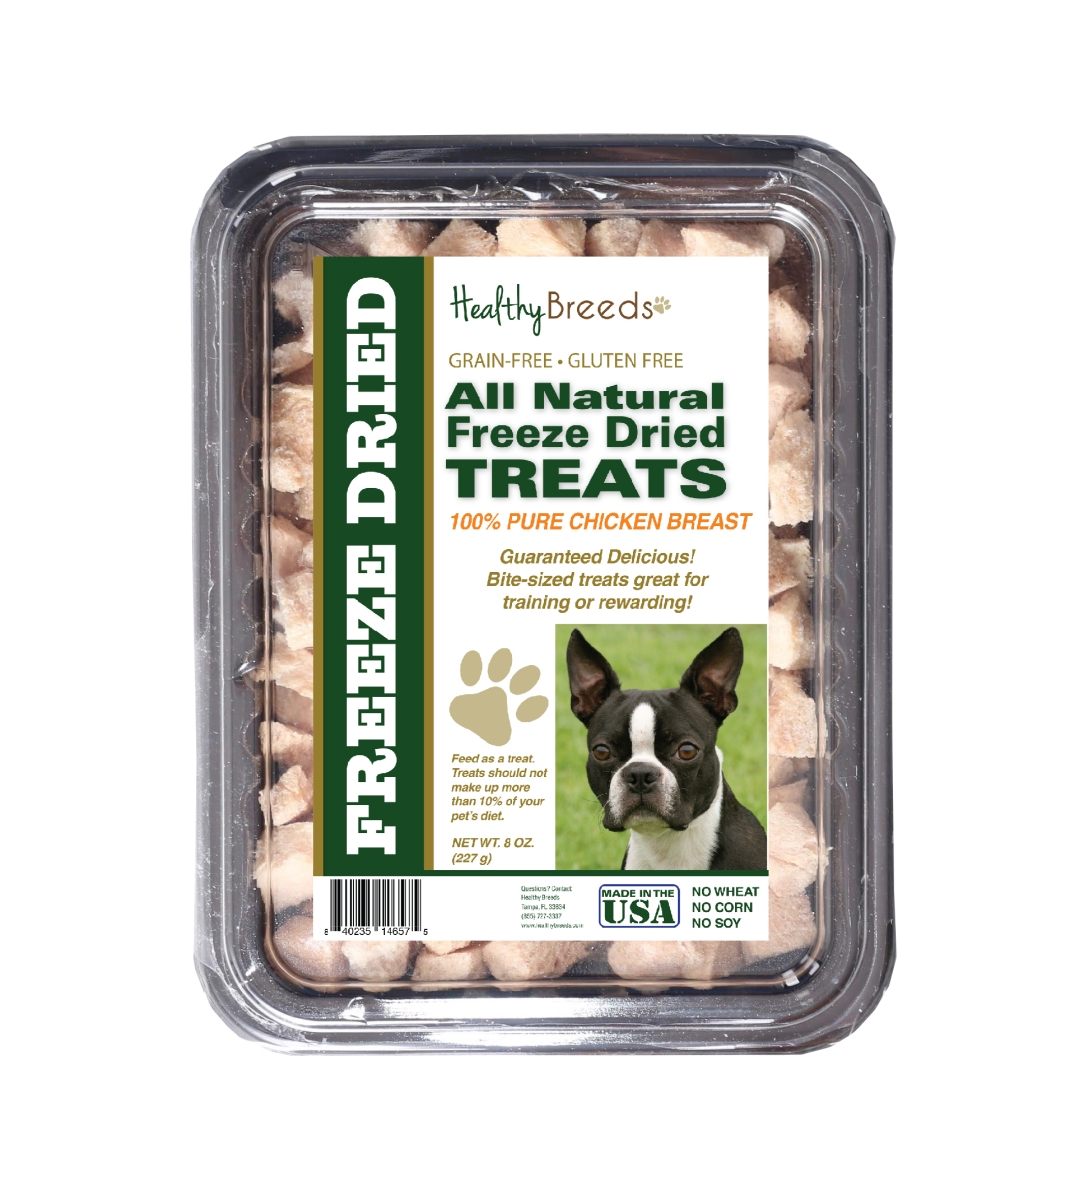 Healthy Breeds 840235146575 8 oz Boston Terrier All Natural Freeze Dried Treats Chicken Breast